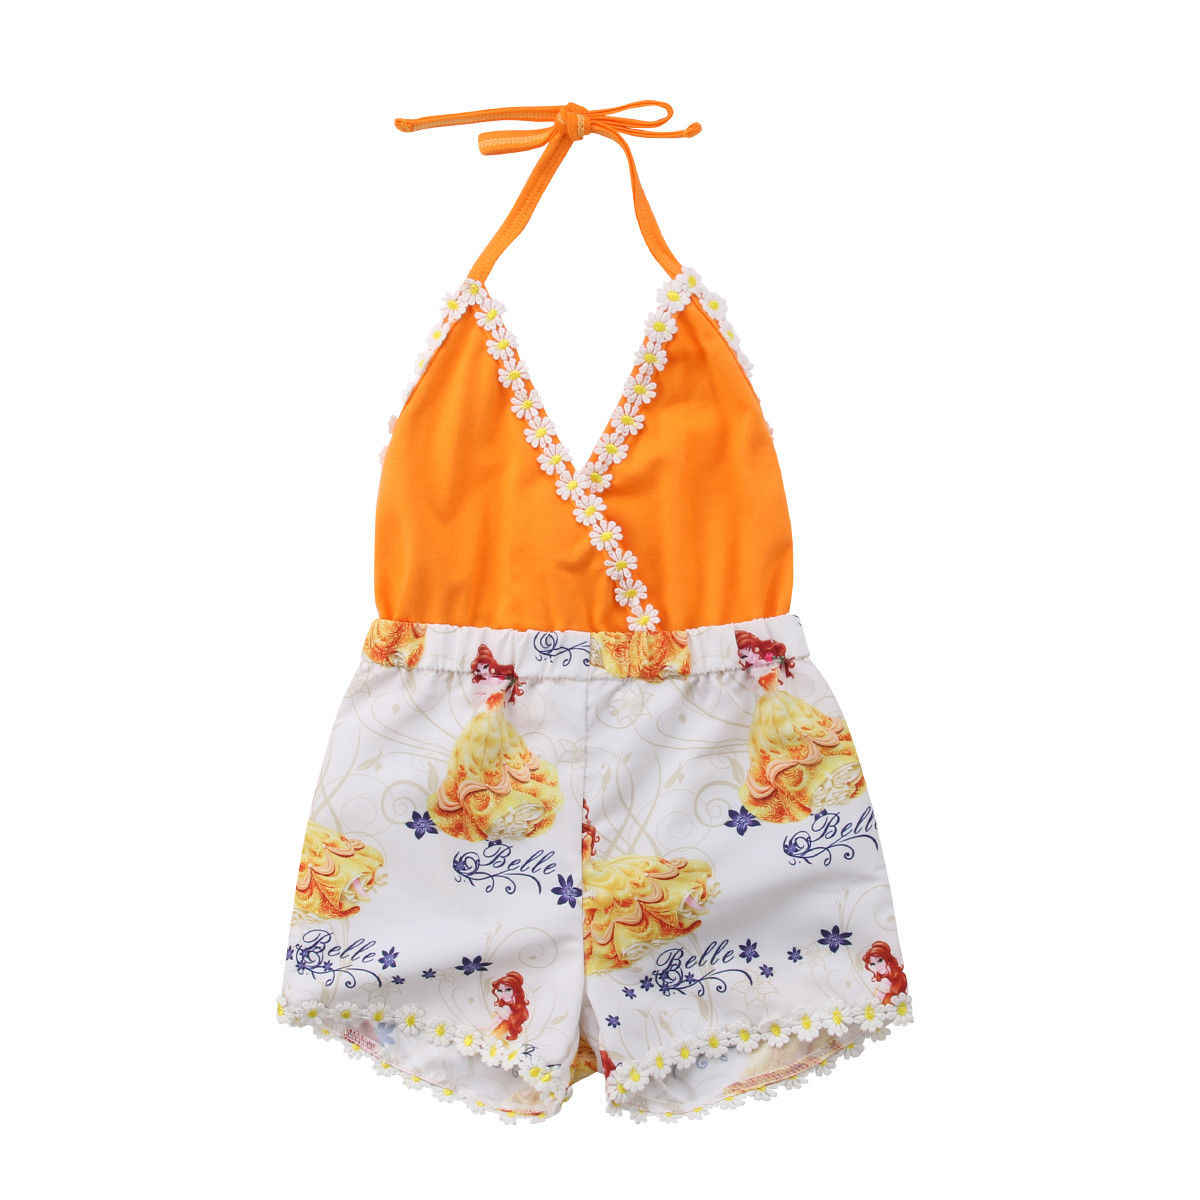 e555ca683f6 Detail Feedback Questions about 0 5T Newborn Kid Baby Girl Clothes V Neck  Floral Romper Lace Jumpsuit Elegant tassels Summer Outfits Infantil costume  on ...